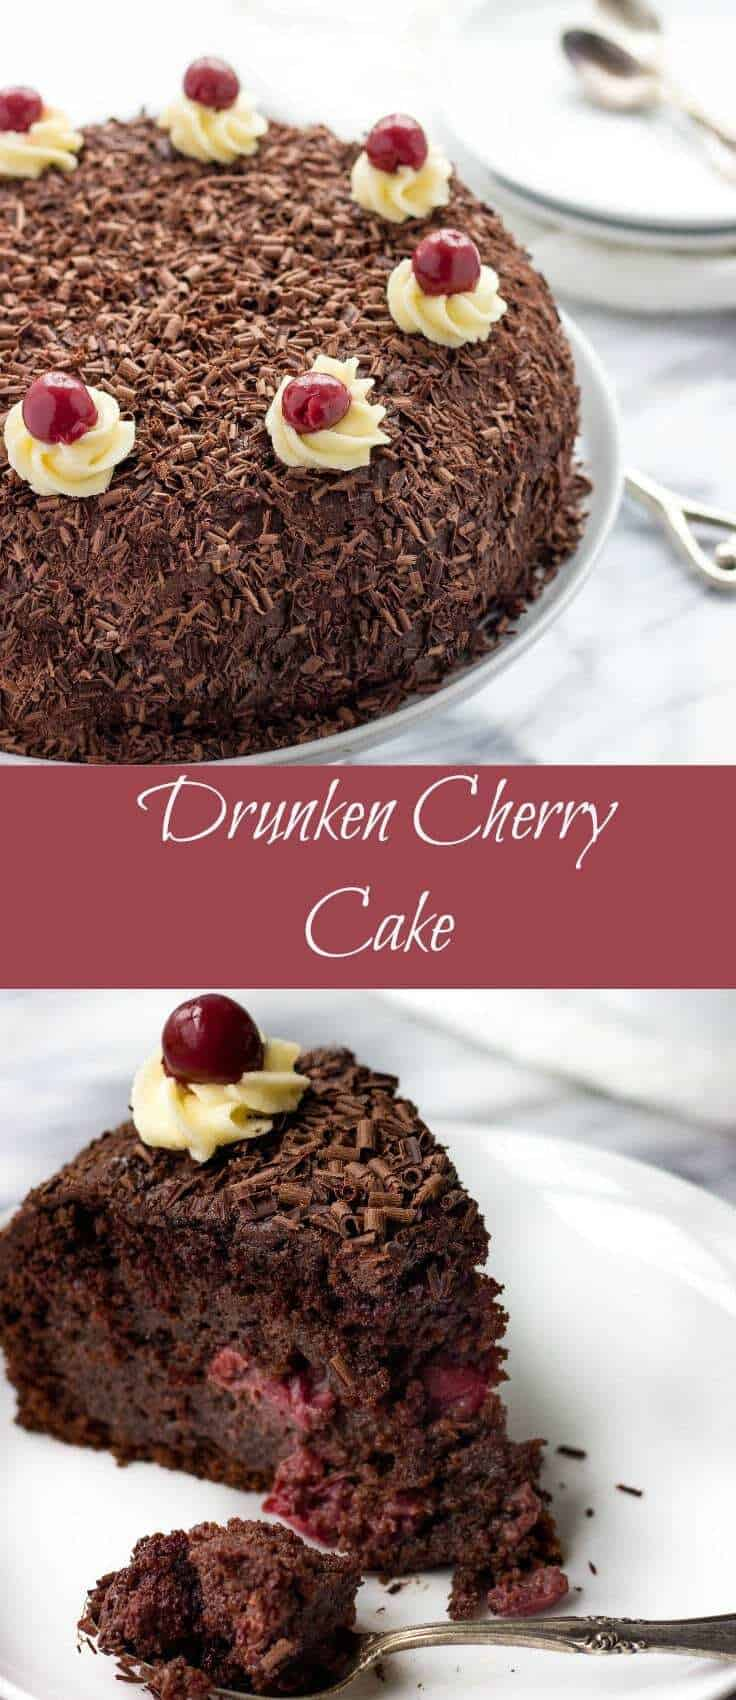 Drunken Cherry Cake is moist, drenched ina decadent mixture of Dulce De Leche, cherries and rum. This Cherry Dulce De Leche Cake is out of this world delicious. You've got to try it!